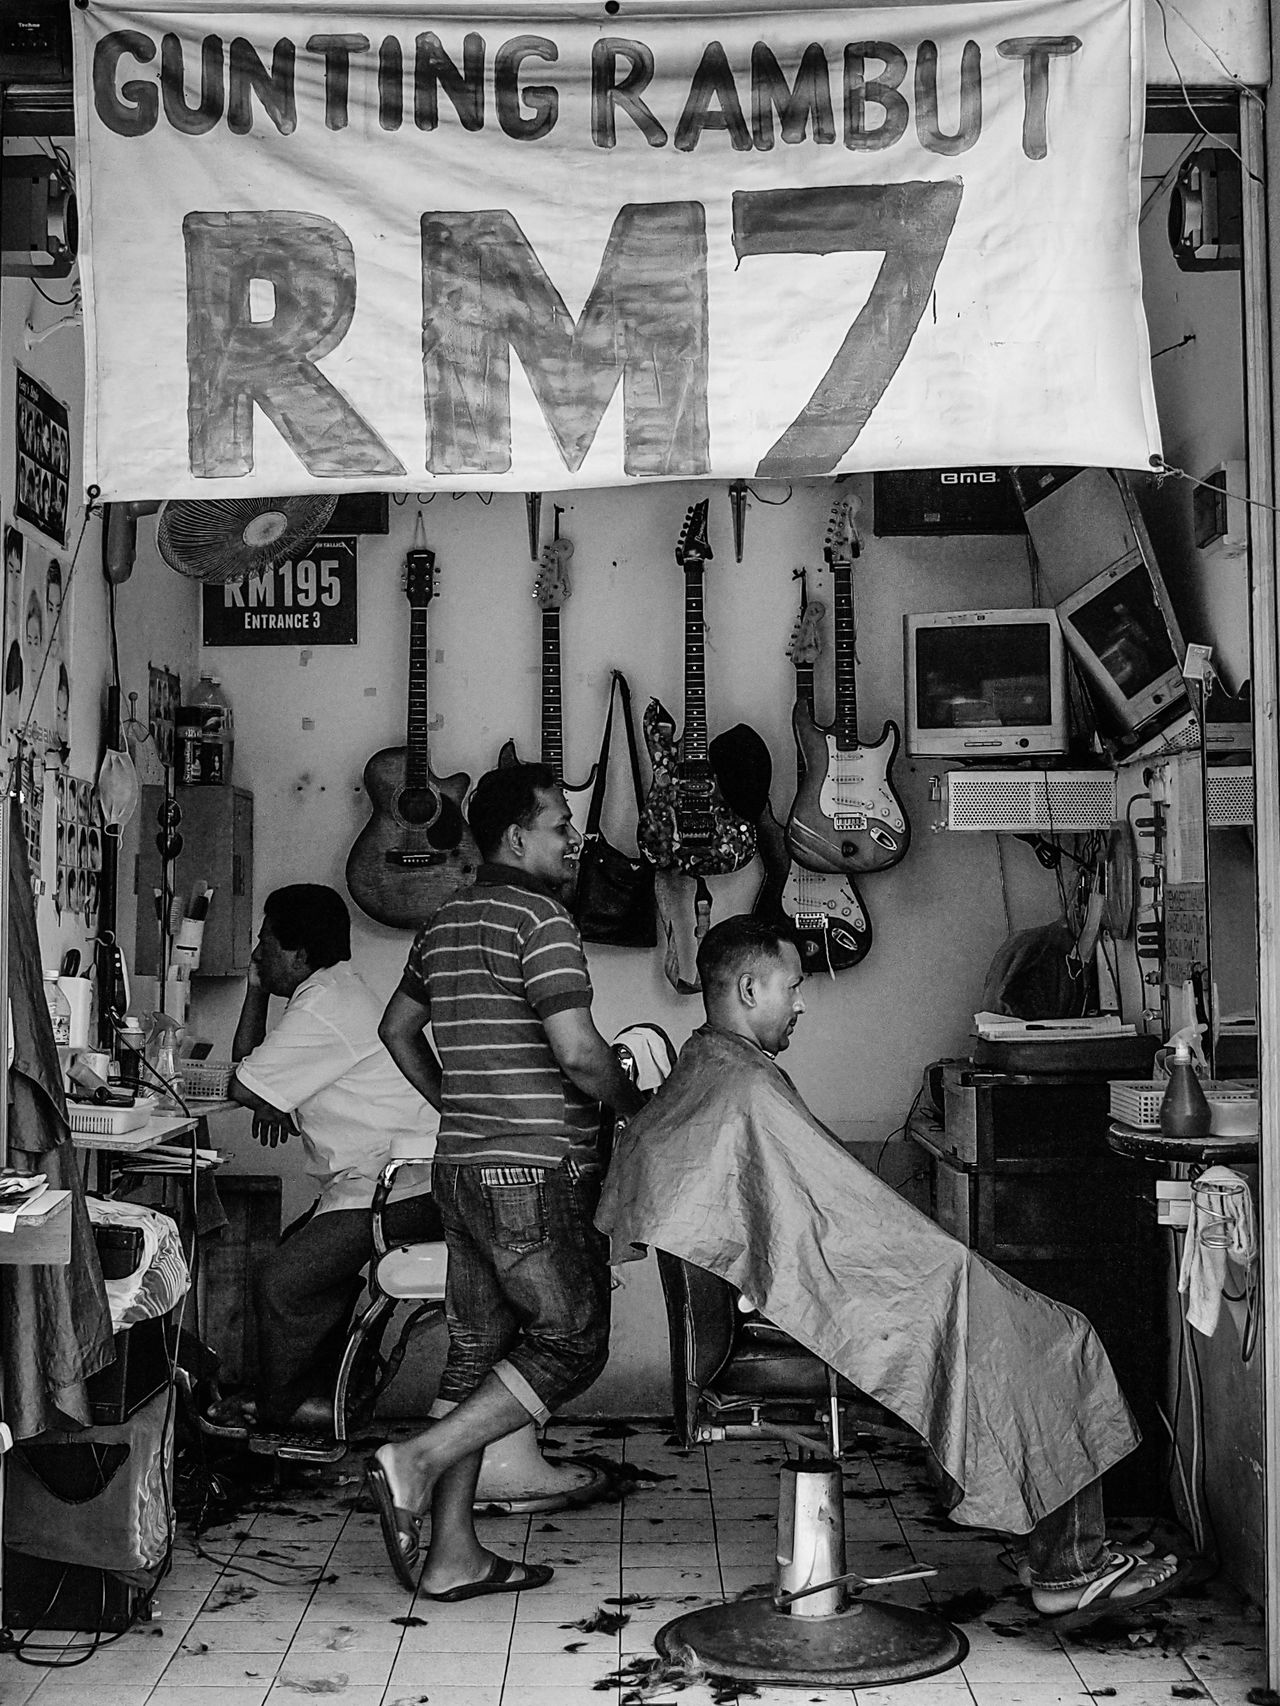 At a Barber shop Haircut Hairstyle Hairdresser Barbershop Retro Hairstyles classical Classical Barbershop Kuala Lumpur Malaysia  Chow Kit Streetphotography Street Of Malaysia Enjoying Life Man At Work Streetphoto_bw Black And White Black And White Photography Asianstreets Cheap Haircut